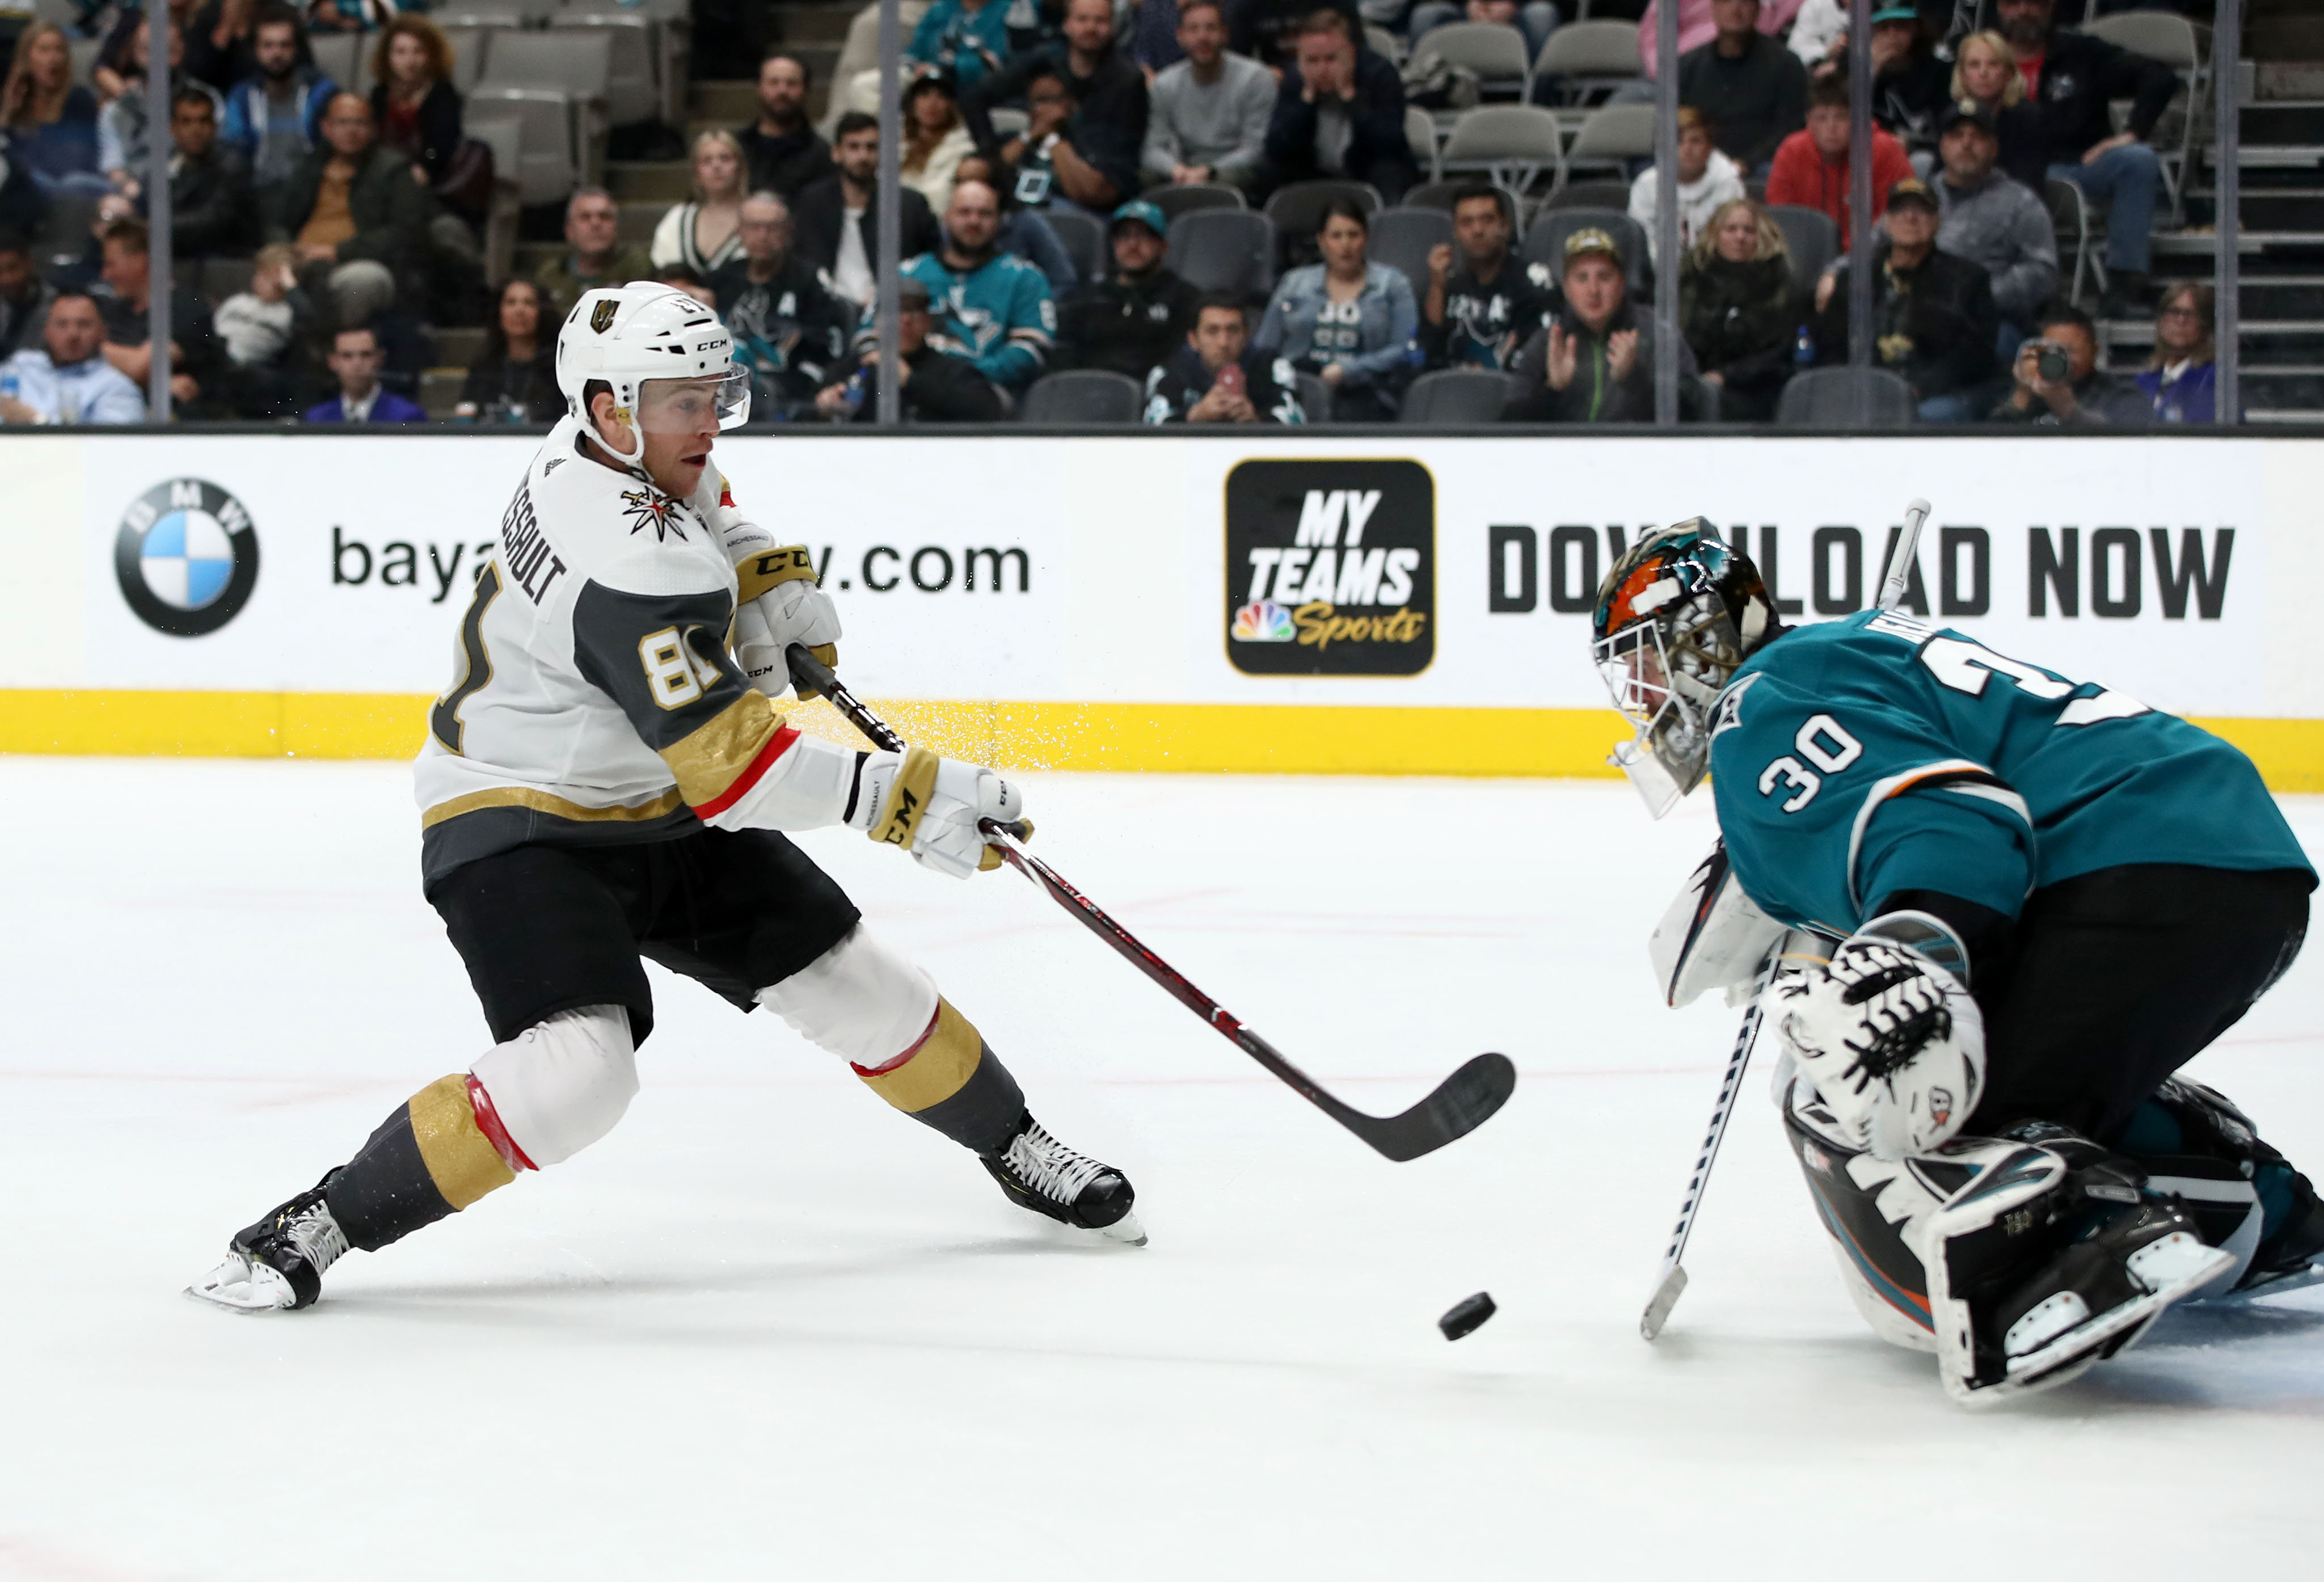 SAN JOSE, CALIFORNIA - MARCH 18: Aaron Dell #30 of the San Jose Sharks makes a save on a shot taken by Jonathan Marchessault #81 of the Vegas Golden Knights at SAP Center on March 18, 2019 in San Jose, California.